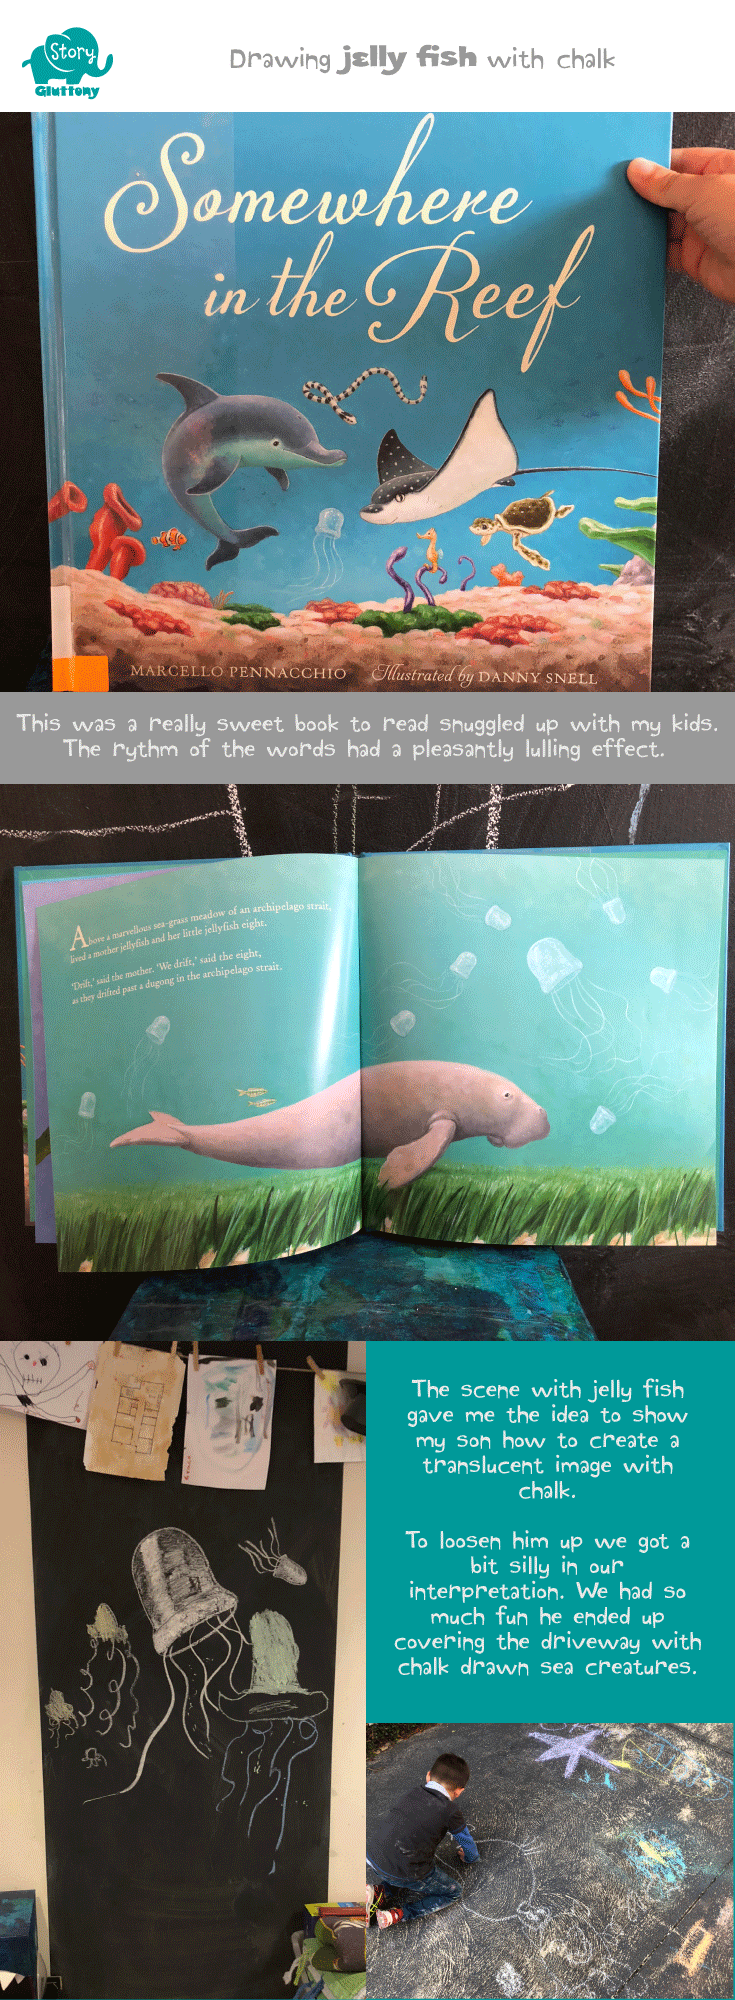 Drawing translucent jelly fish with chalk